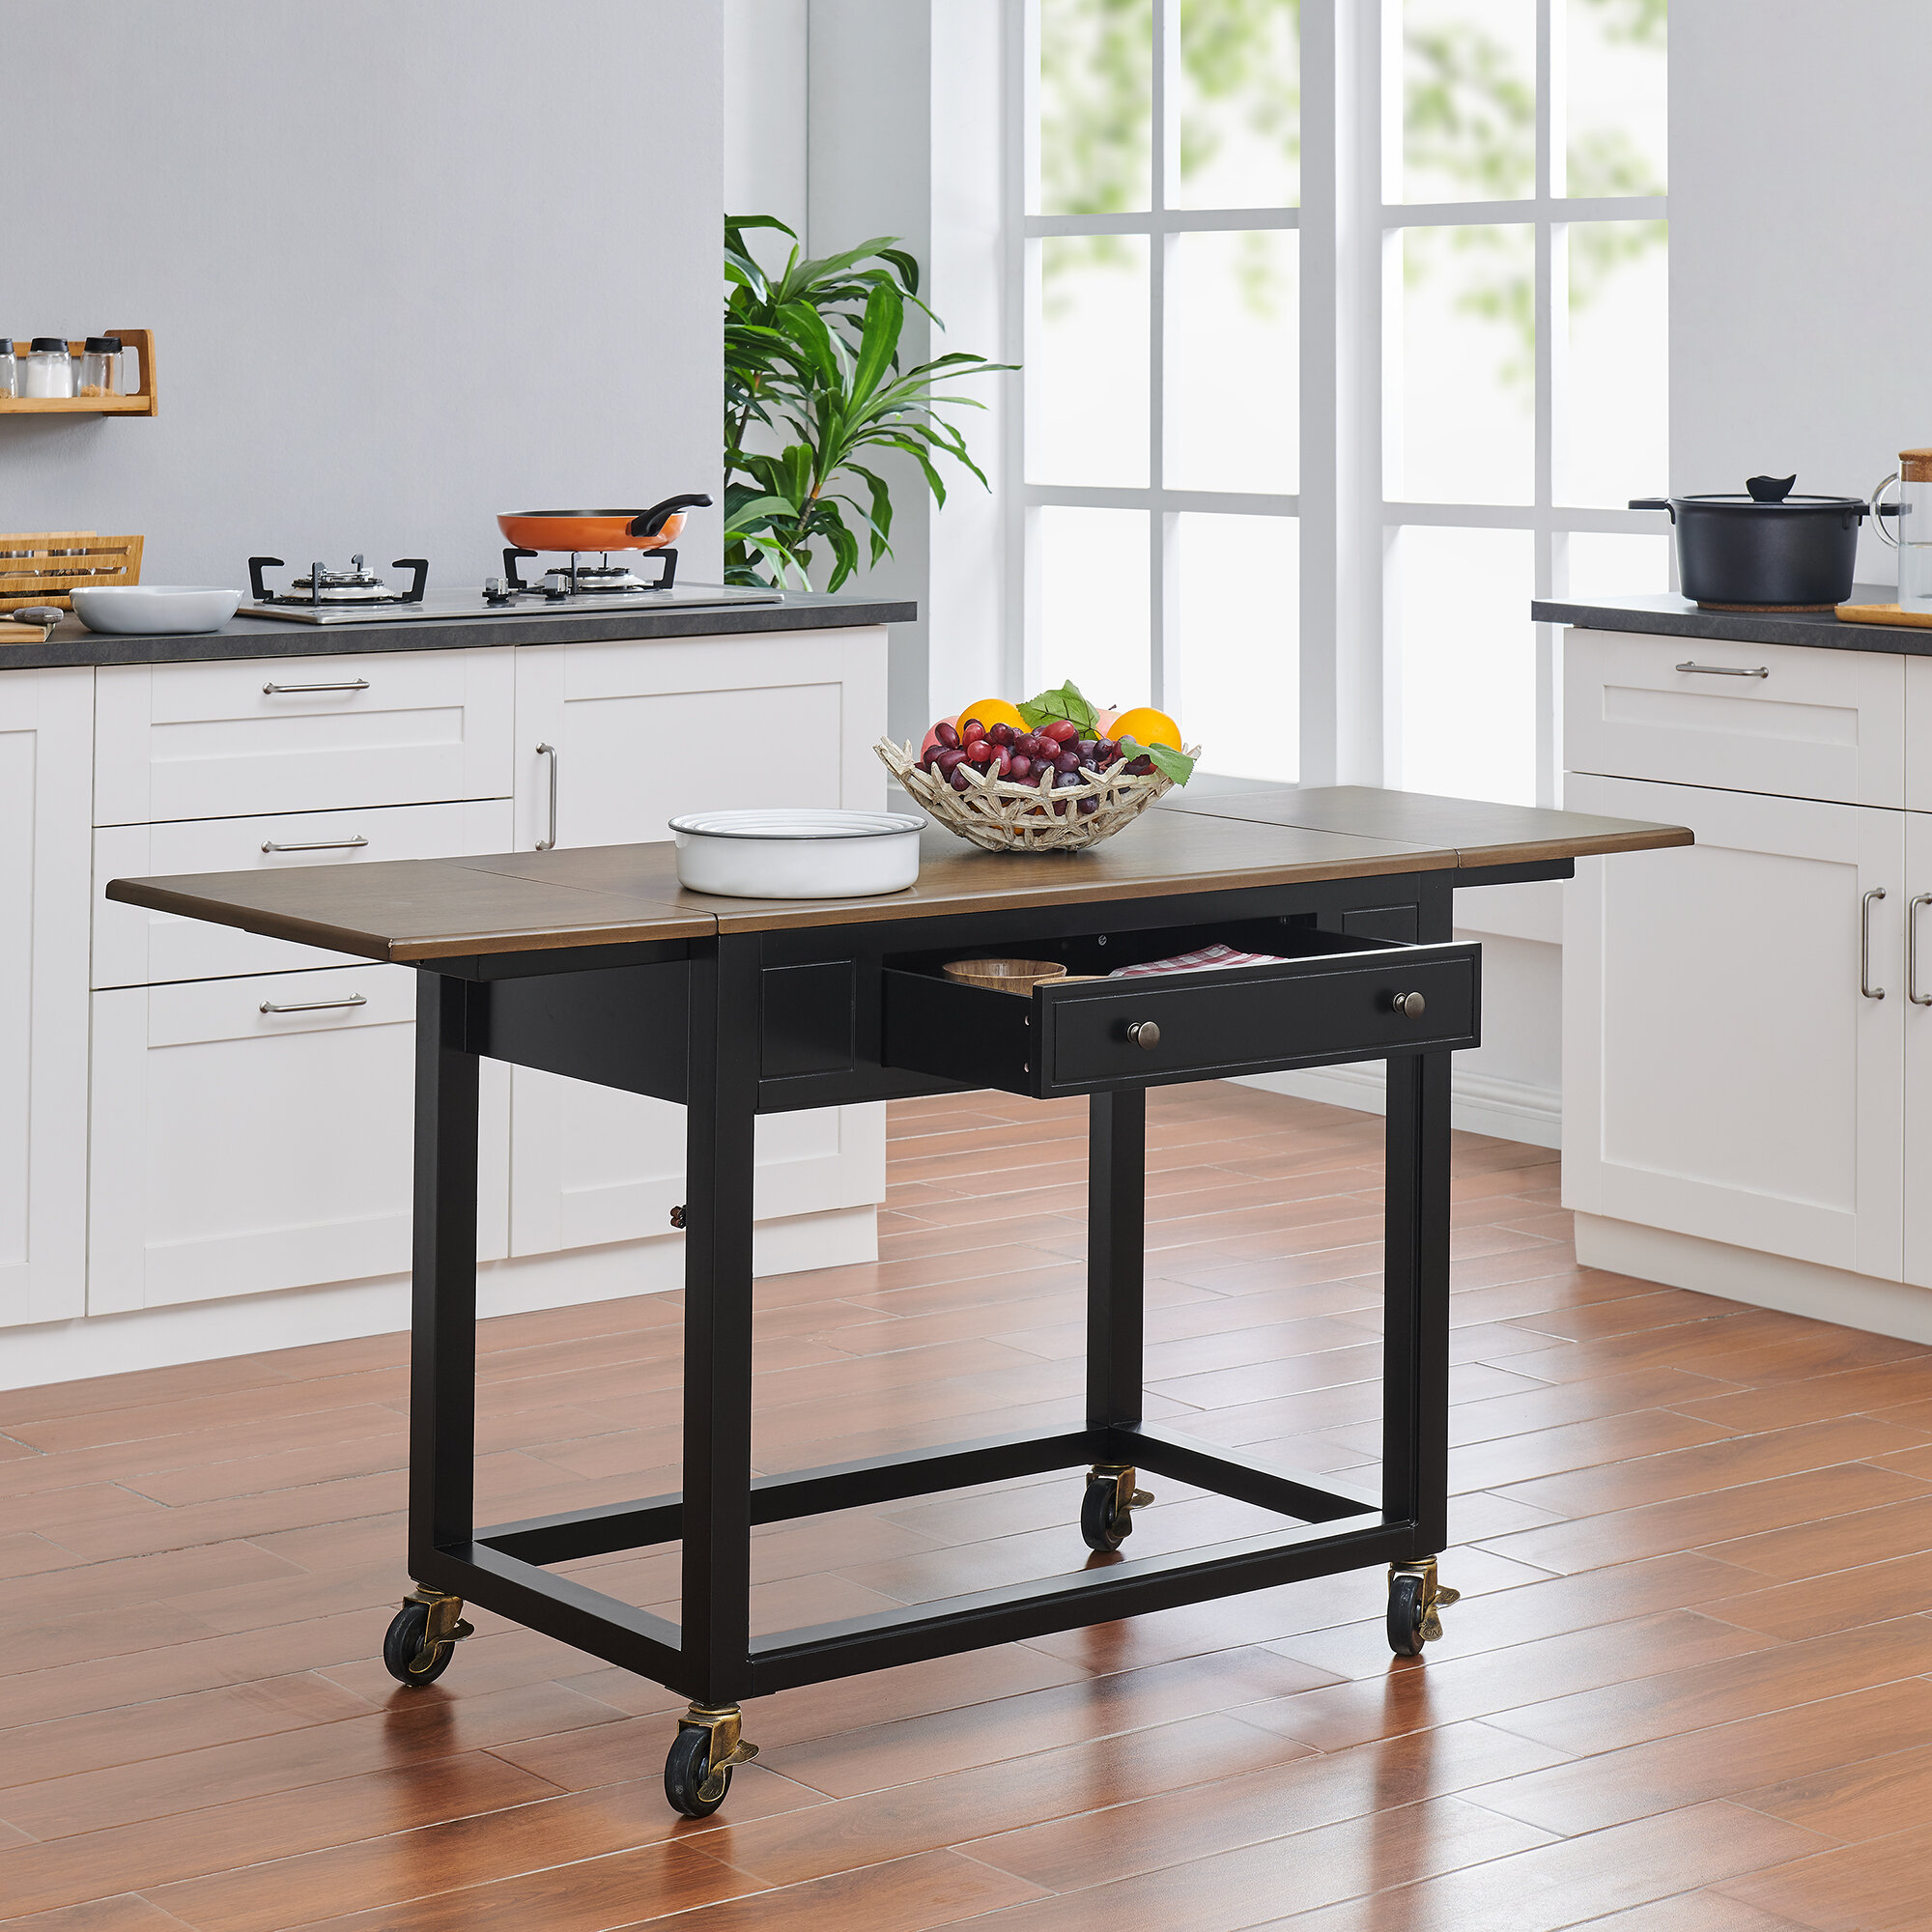 Amazon.com: Origami Folding Kitchen Cart on Wheels | for Chefs ... | 2000x2000